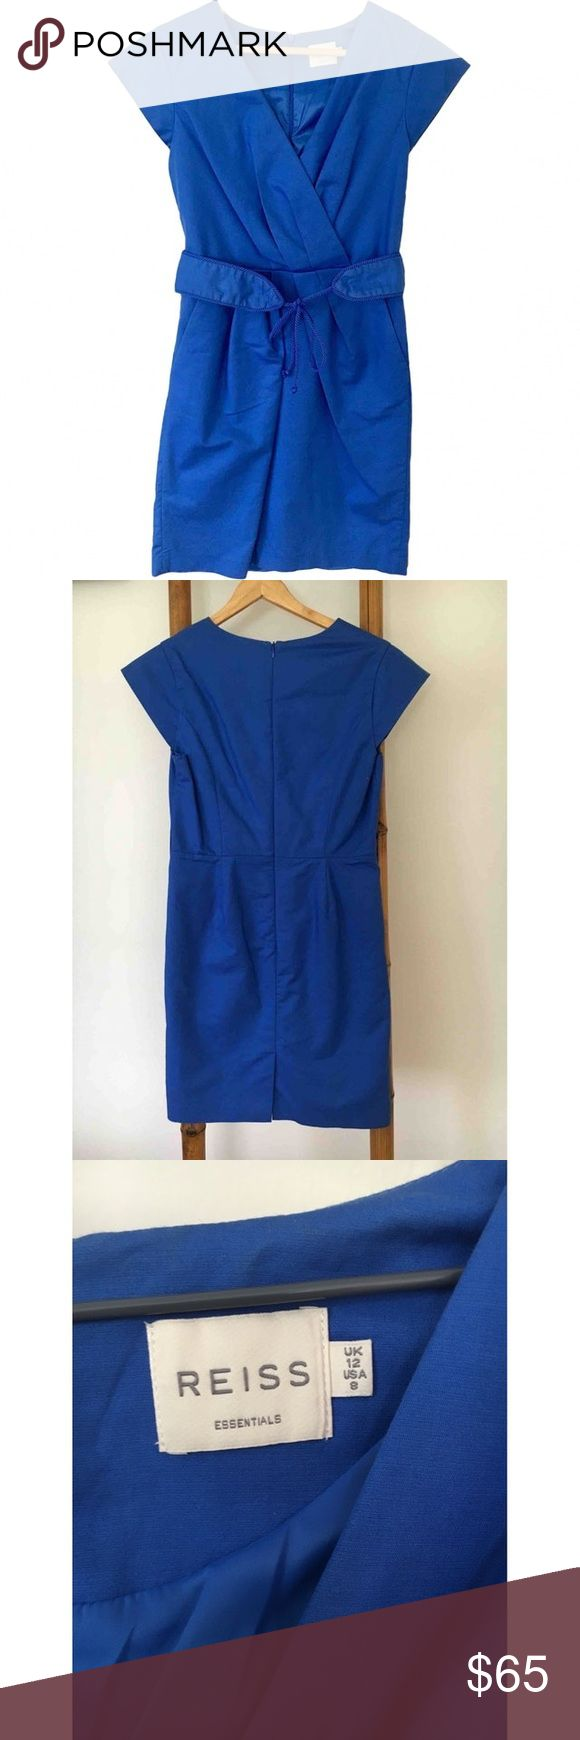 "🌪 ""cyber Monday"" Reiss dress Electric blue dress with 2 belt pockets, draped front and a belt. Knee length In perfect condition: no holes, stains or tears Reiss Dresses Midi"